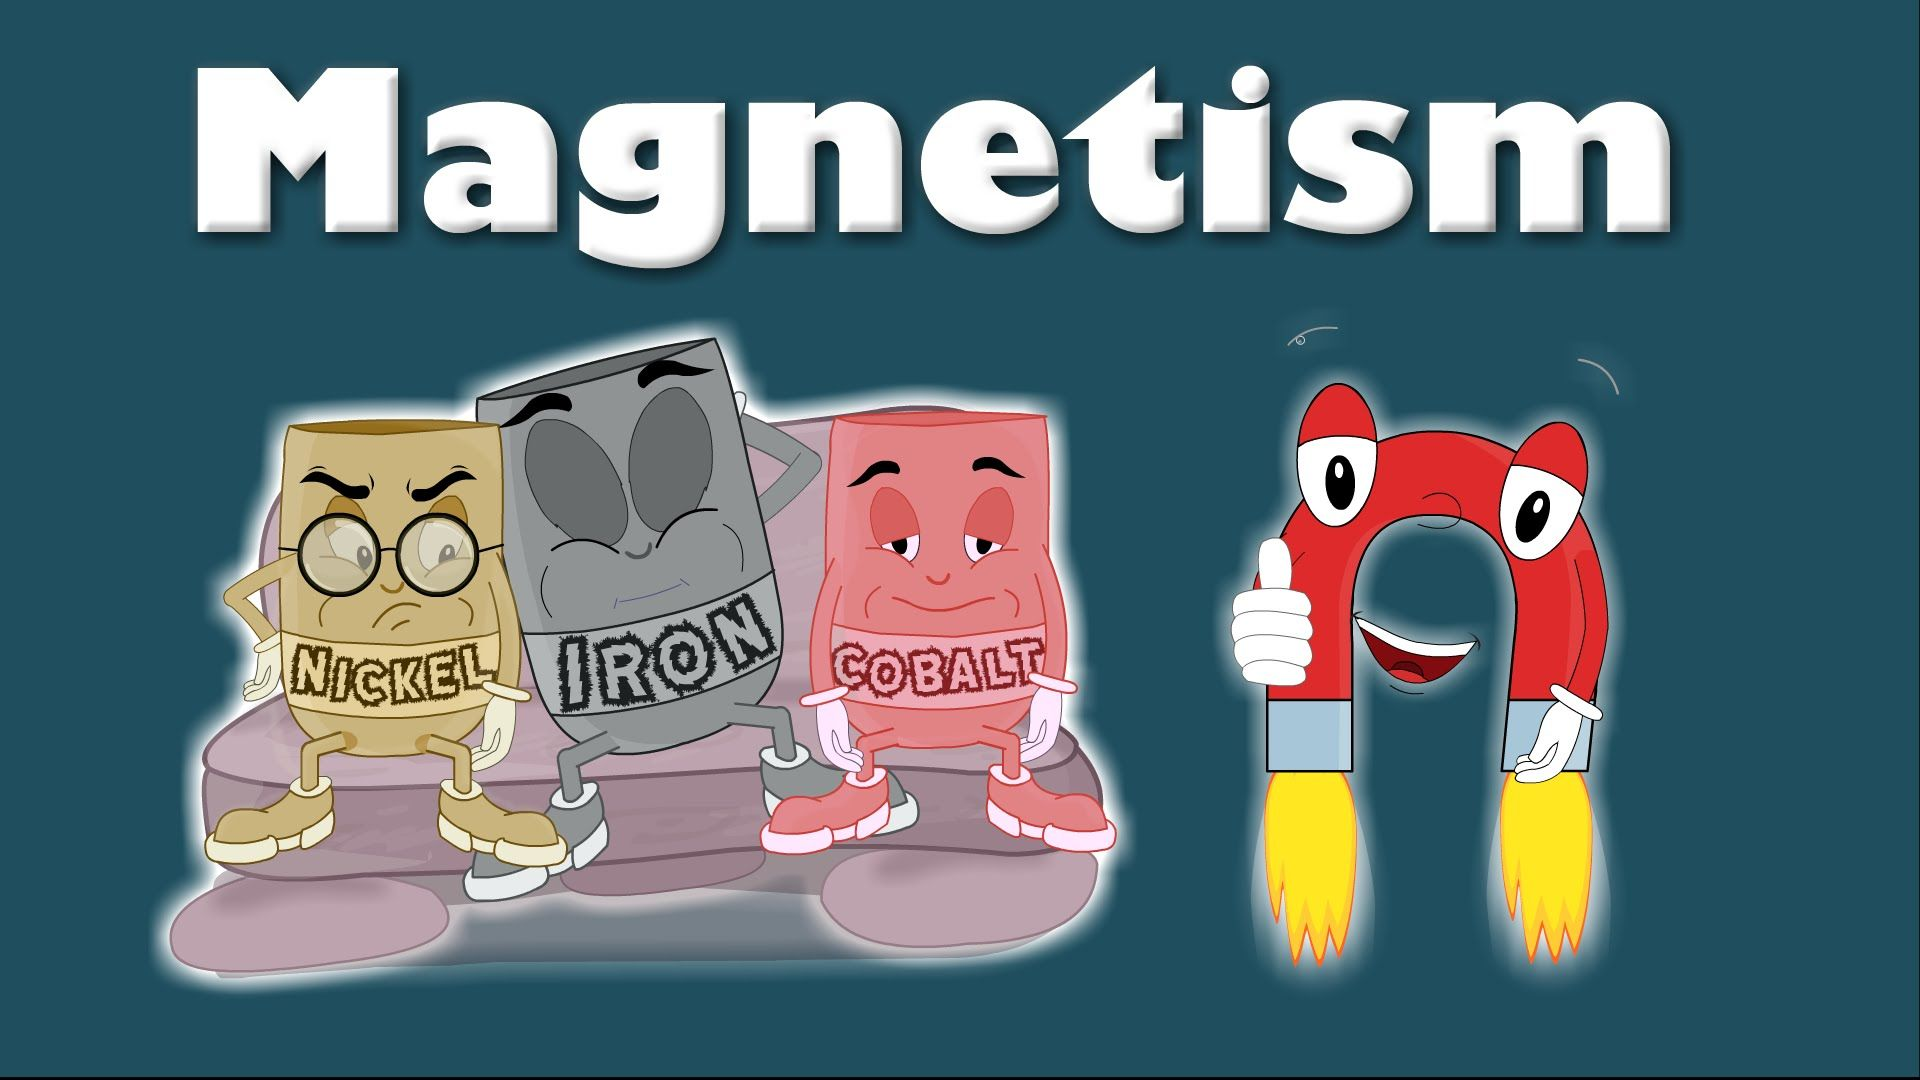 Video About Magnetism By Smart Learning For All